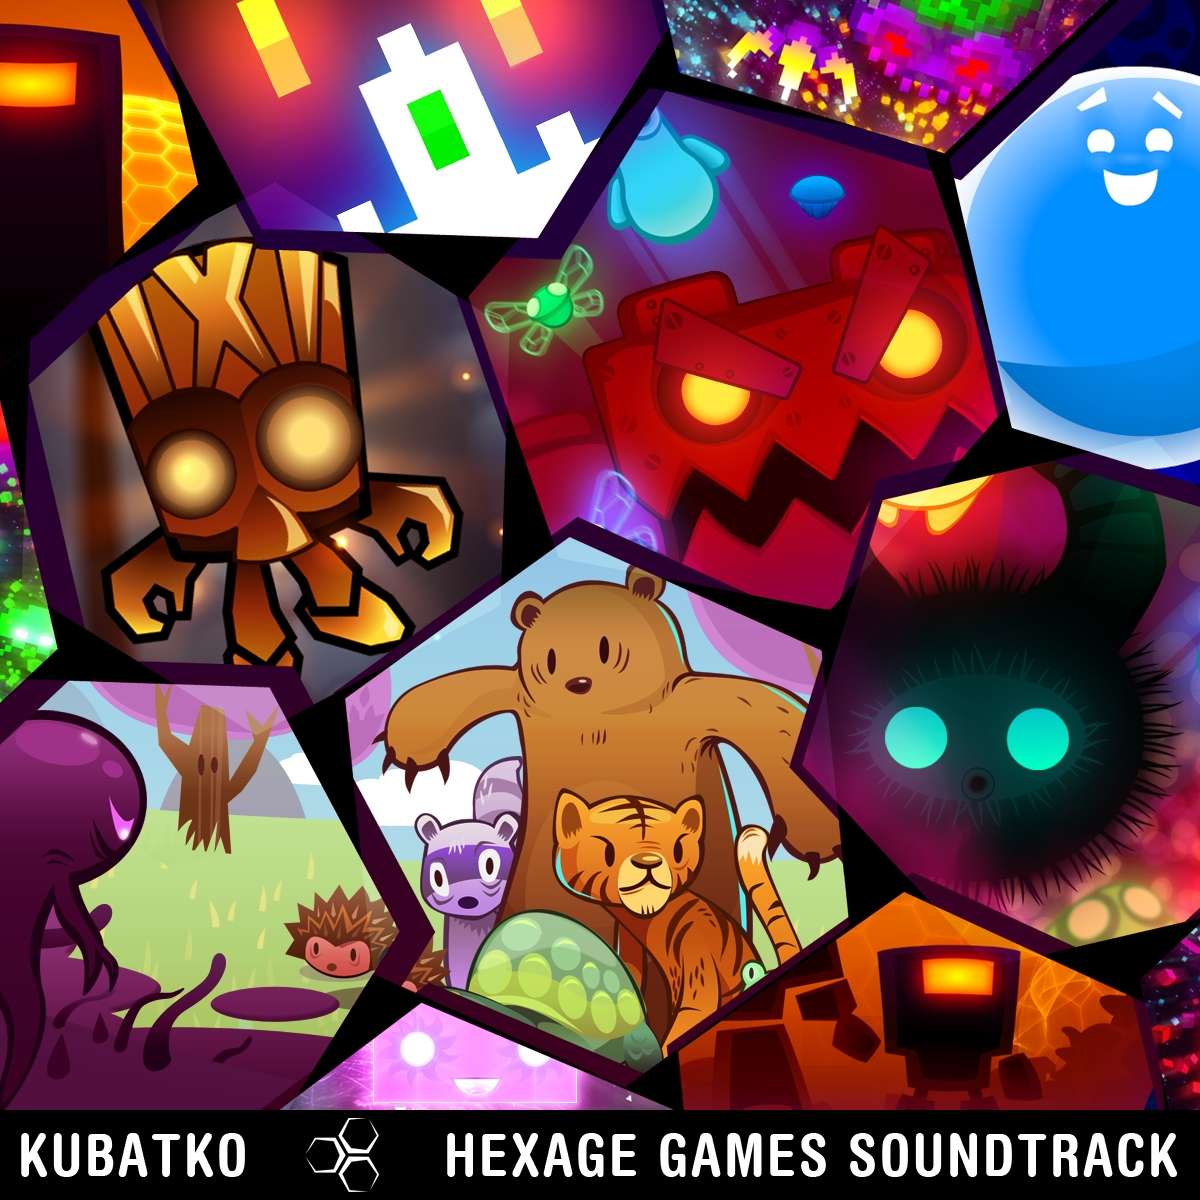 Hexage Games Soundtrack